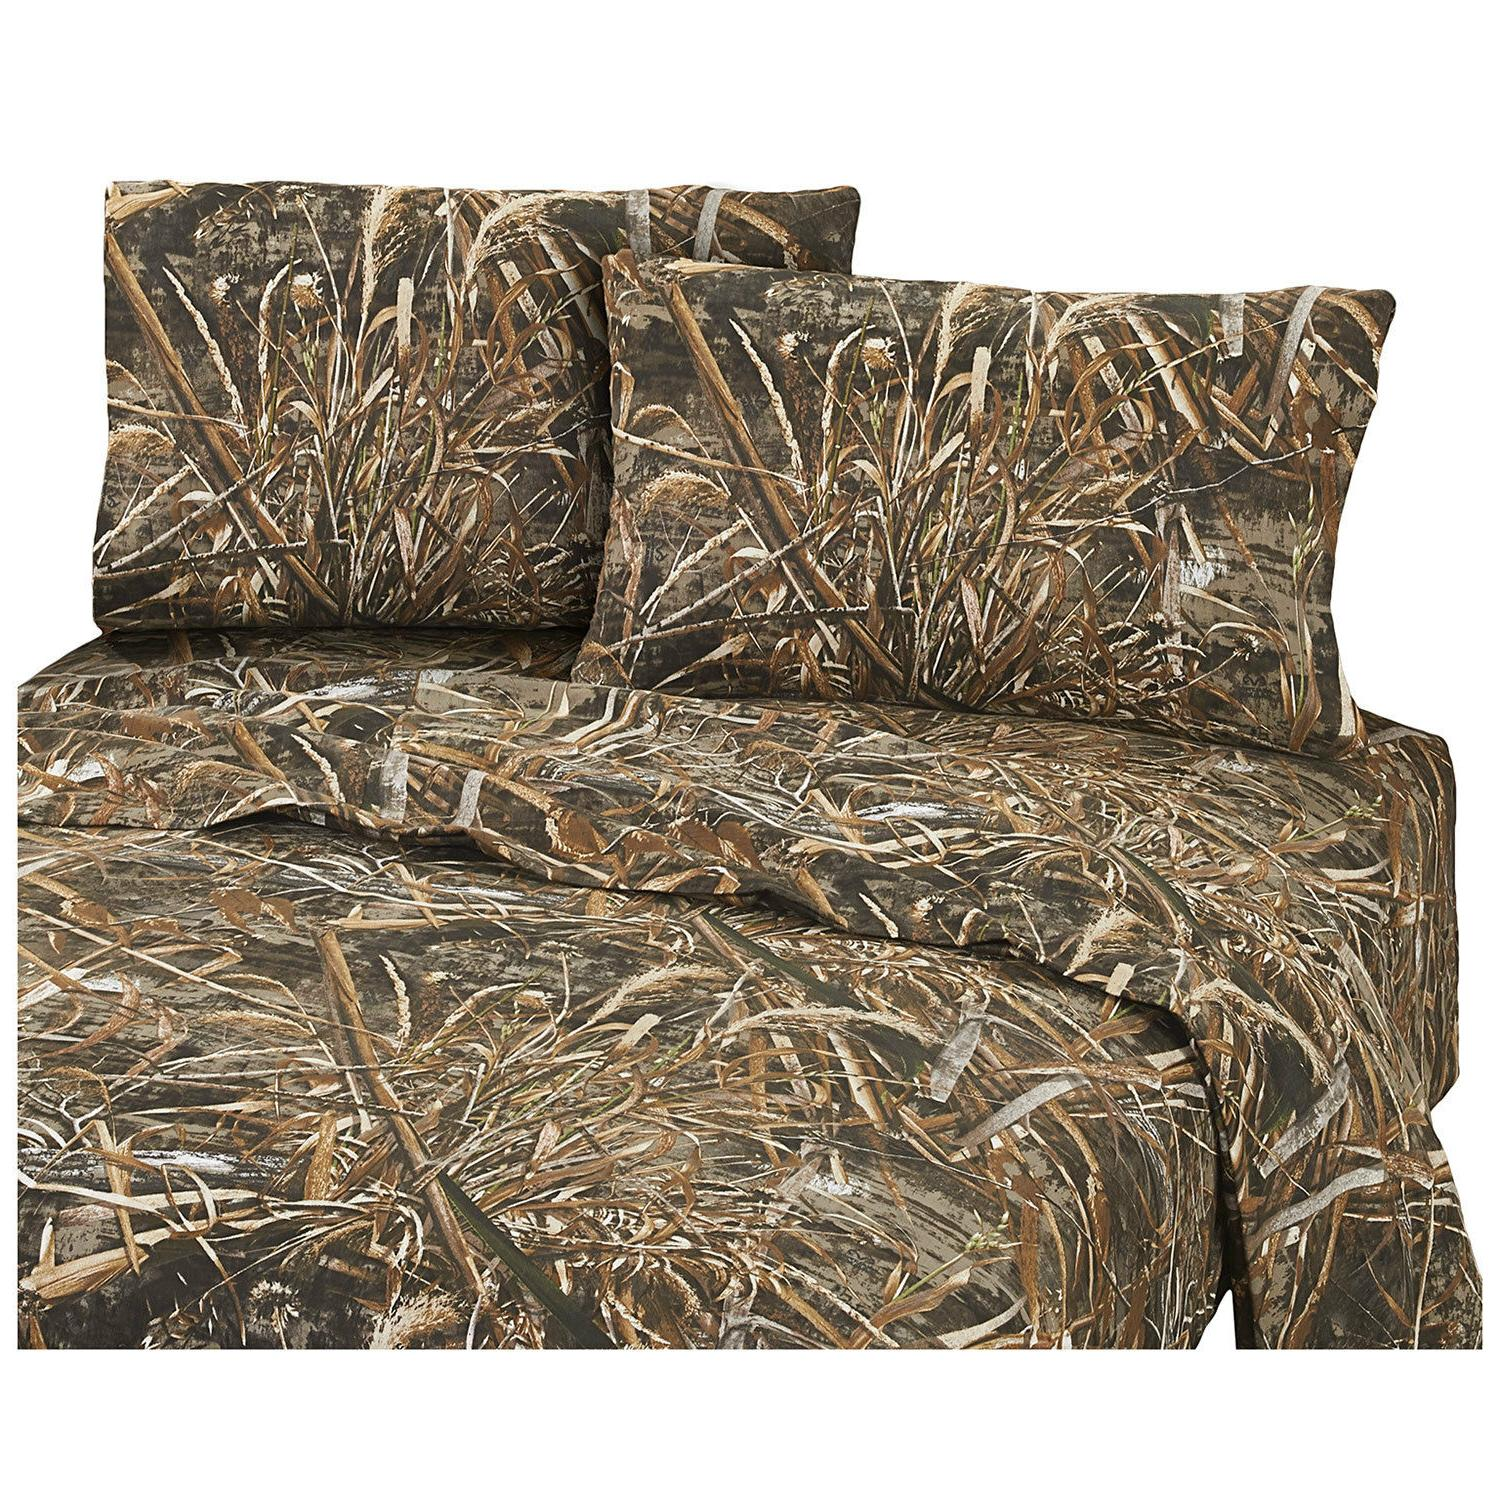 Realtree Max-5 Queen Sheet Set Camo 4pc Grasses Ducks Geese